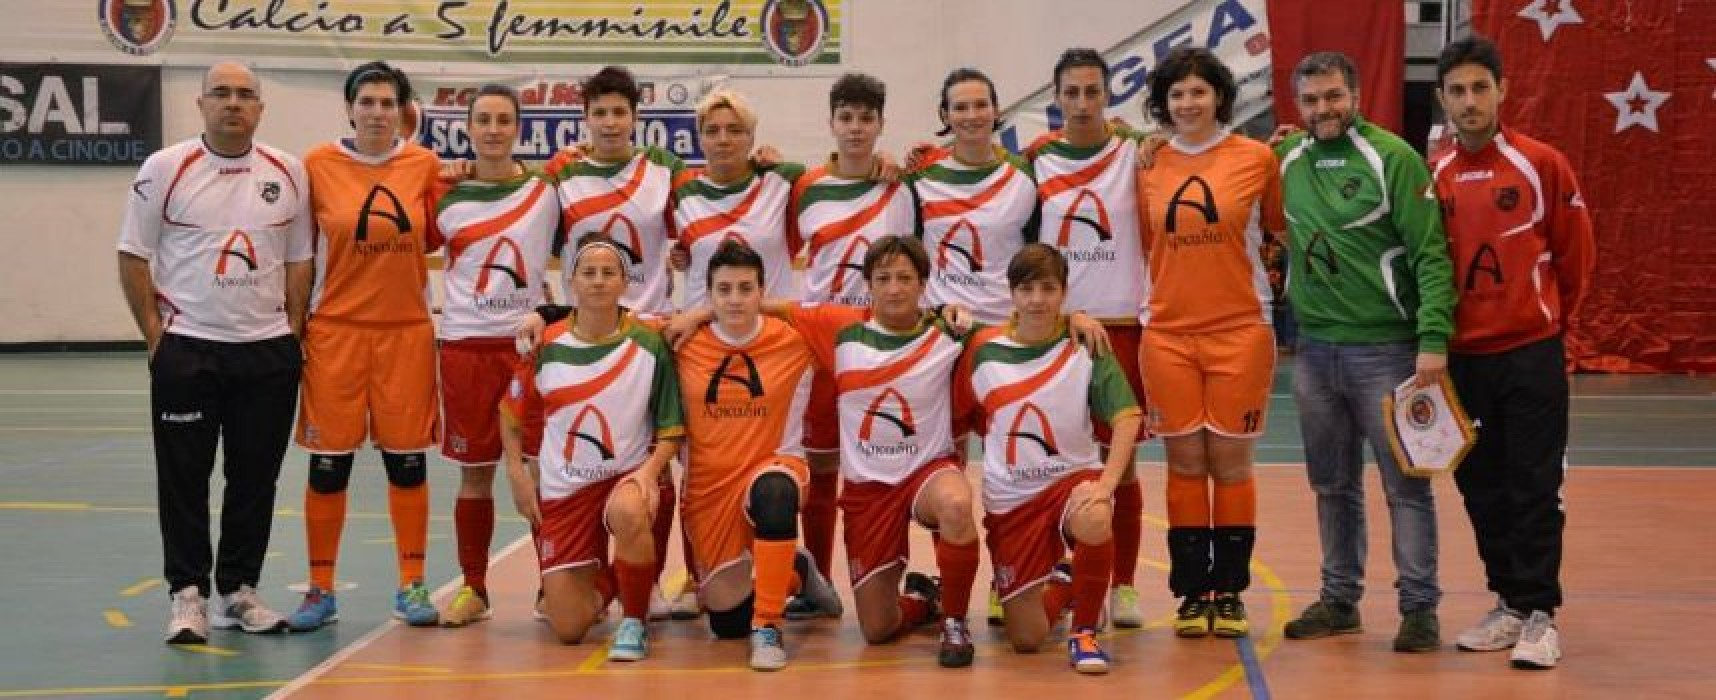 Arcadia sbanca Palermo e risale la classifica